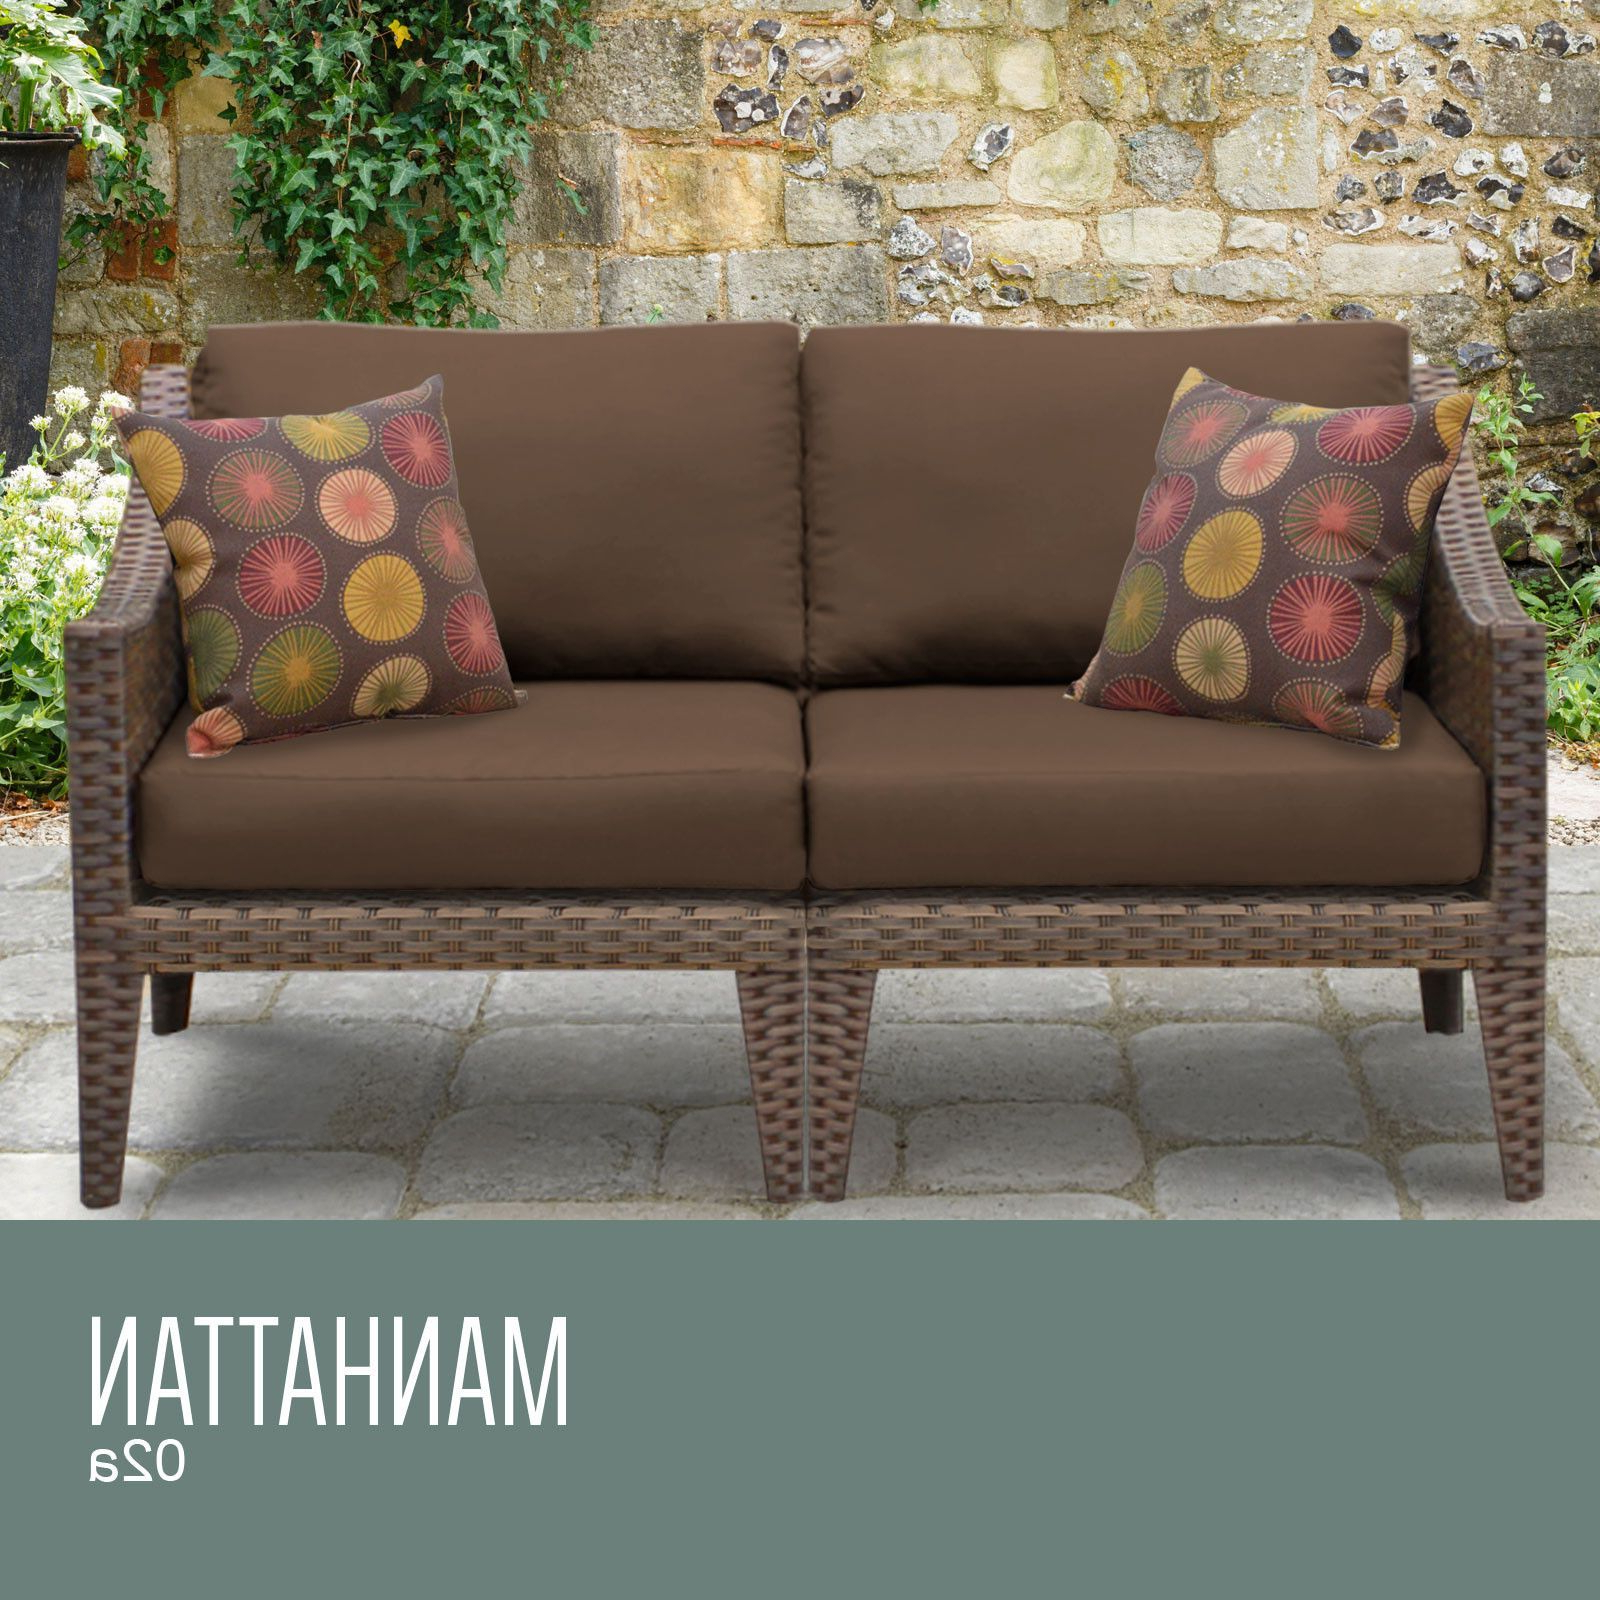 Provencher Patio Loveseats With Cushions Pertaining To Widely Used Manhattan 2 Piece Outdoor Wicker Patio Furniture Set 02A (View 13 of 20)